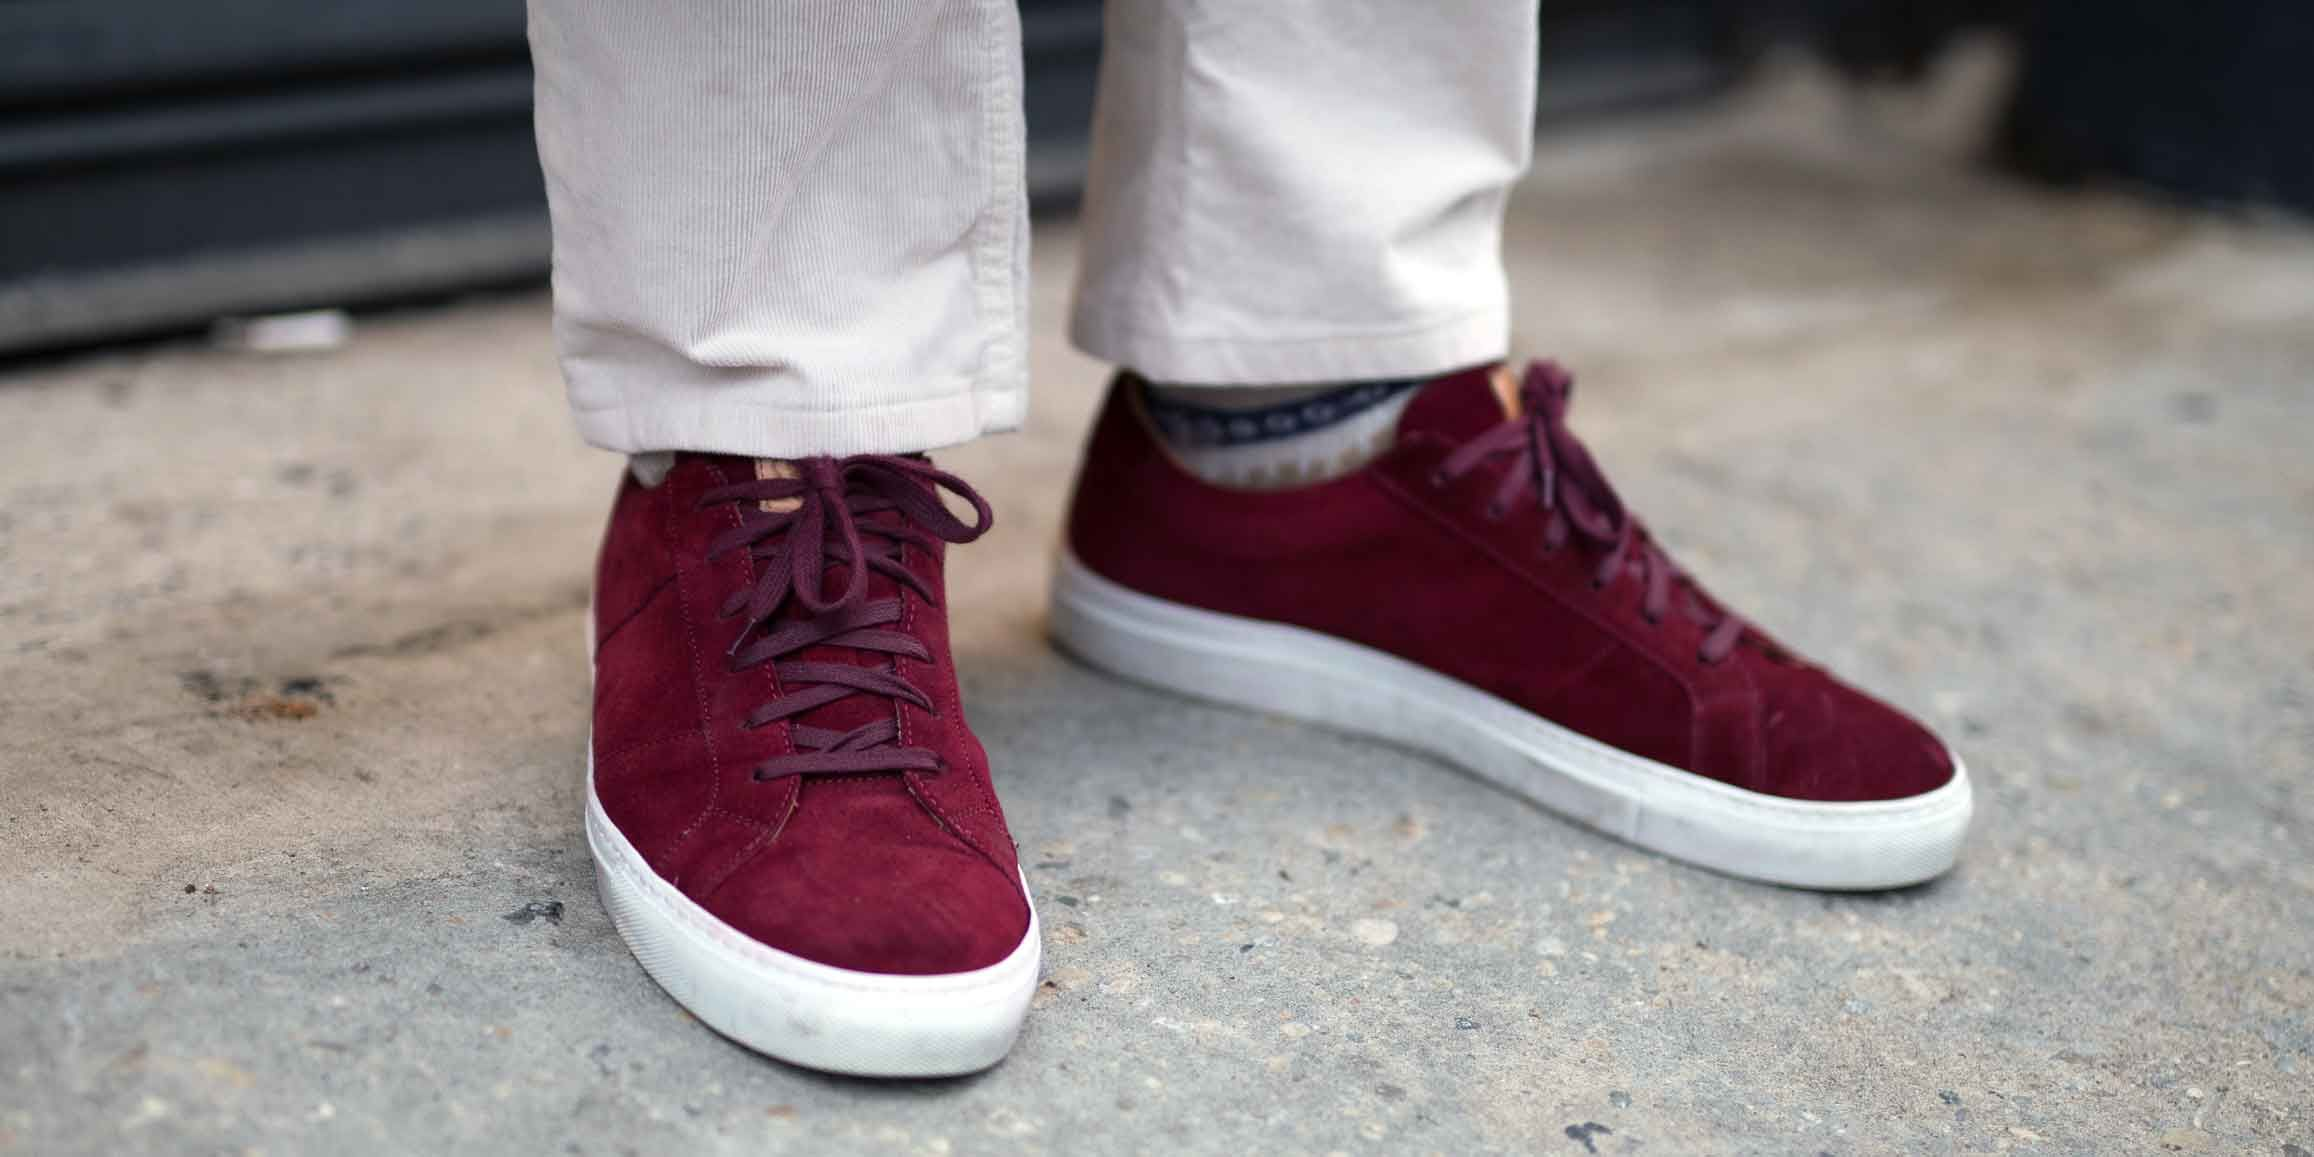 Best 2018 Sneakers Men Suede For Spring And Summer Shoes 11 GMqSzVUp